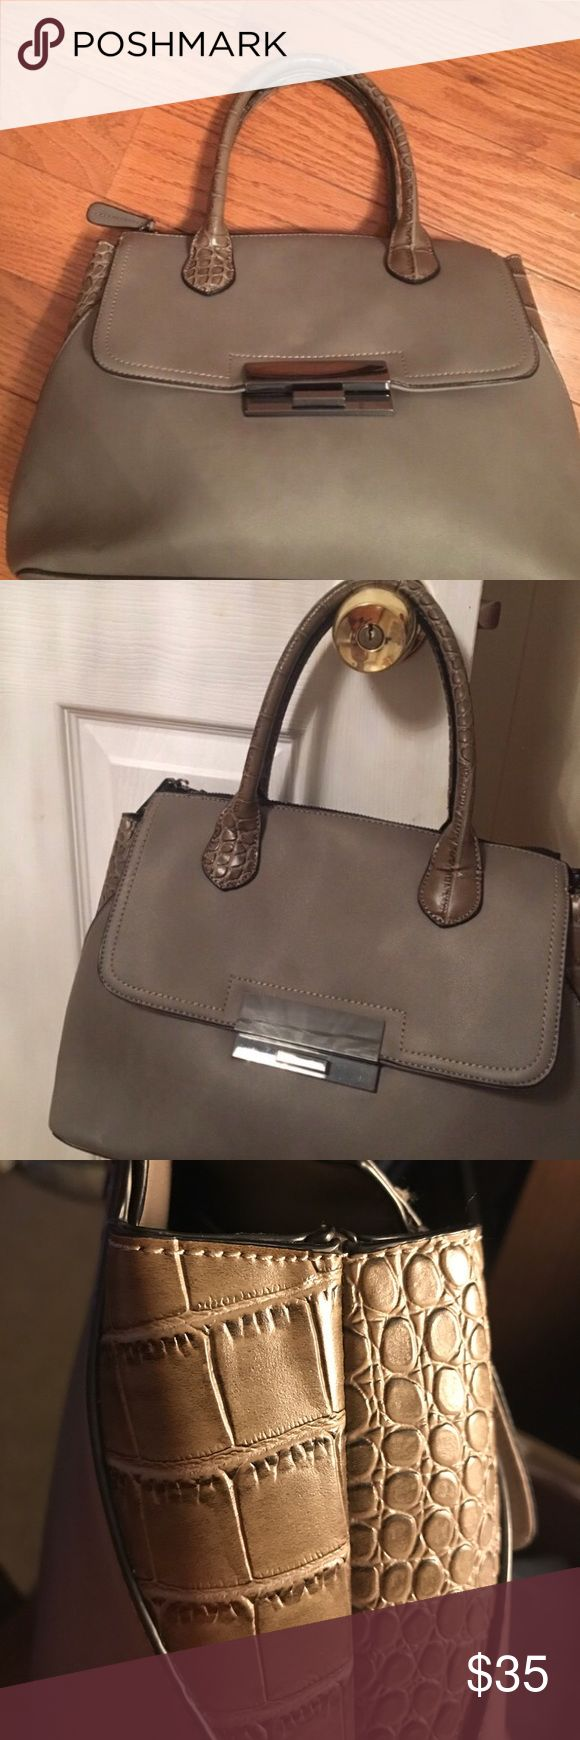 Aldo handbag Great Aldo handbag. Color is grayish, taupe? The sides have some sort of croc print and it looks more army green colored. Overall a really nice neutral bag. Barely used,no real signs of wear or tear. Inside is clean as well. Aldo Bags Totes